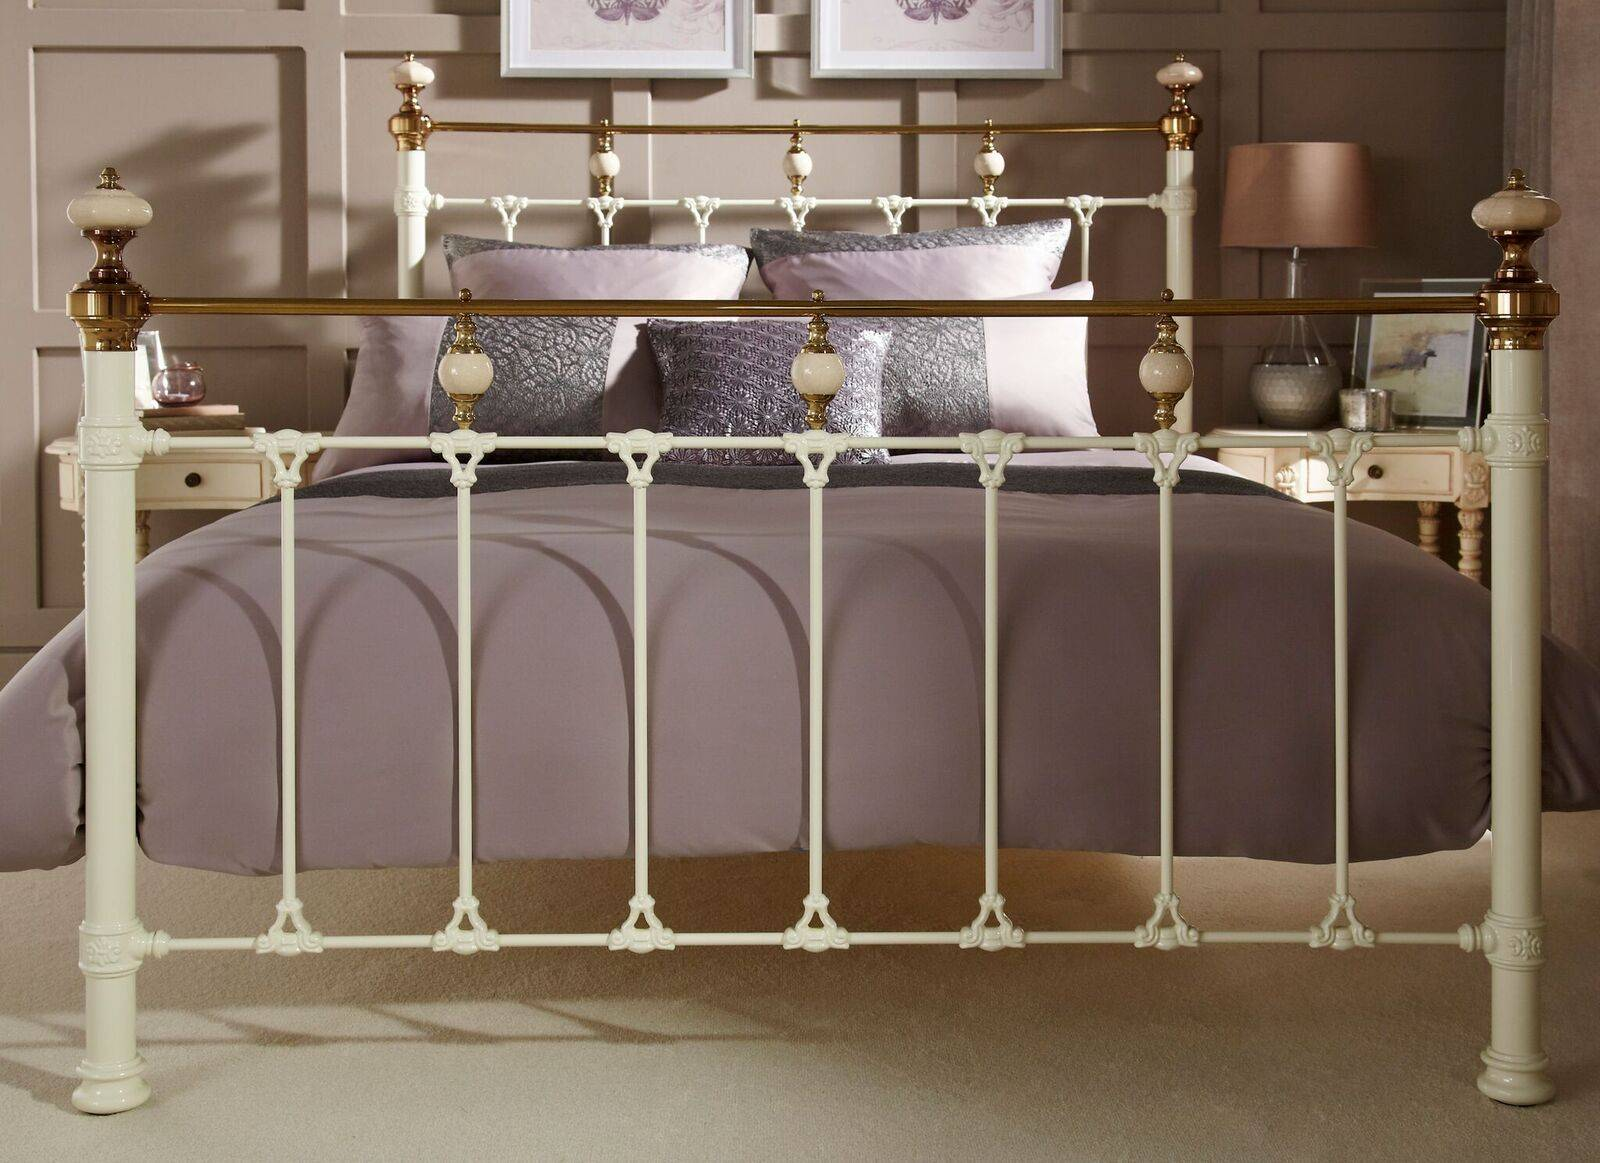 e41e8cab1910 the Abigail metal bedstead / bedframe available at out burton on trent  bedroom shop / showroom